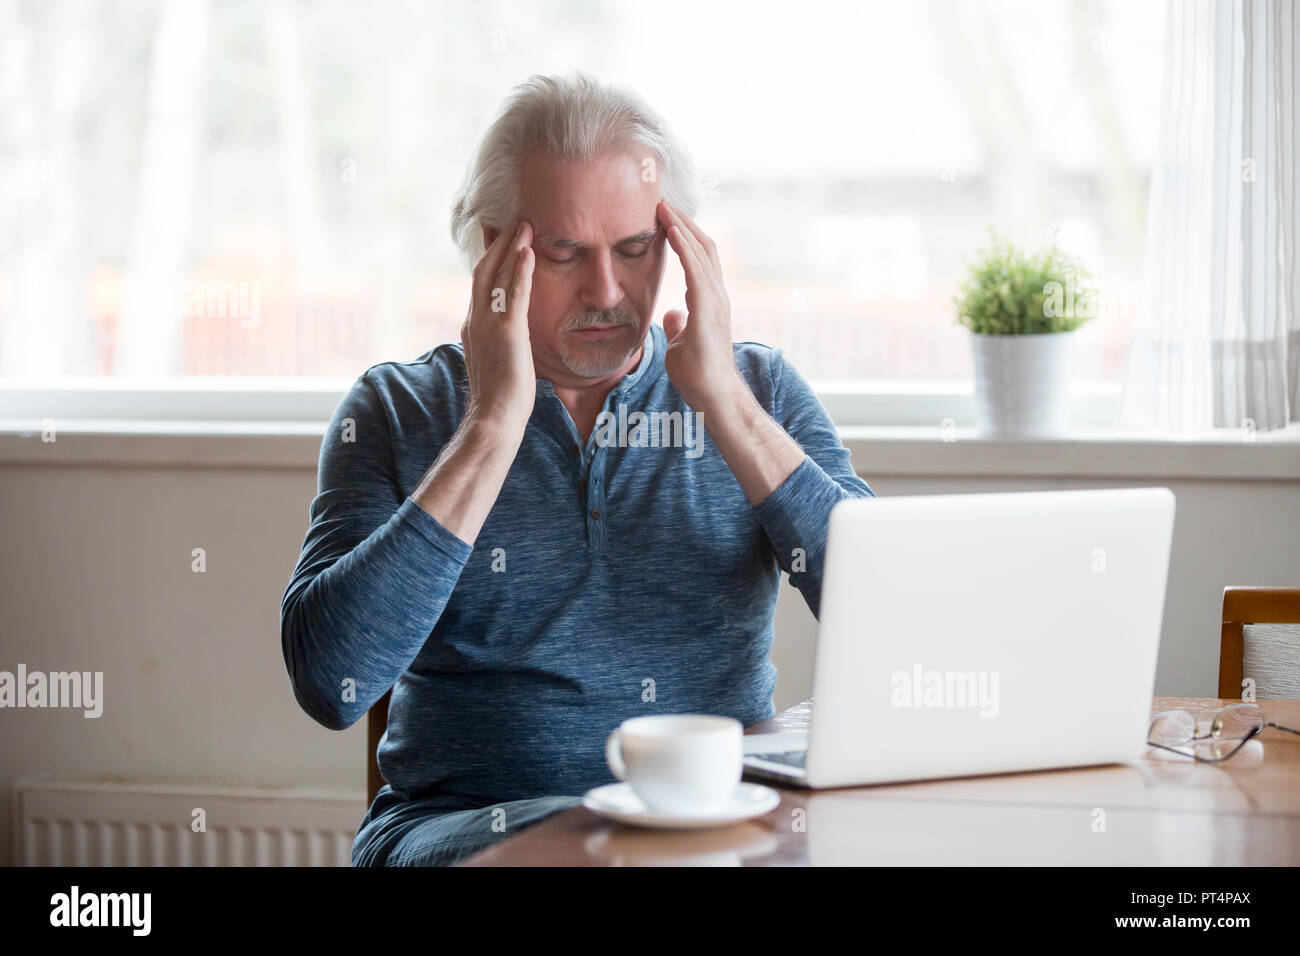 Tired senior man touching temples feeling headache working on la - Stock Image